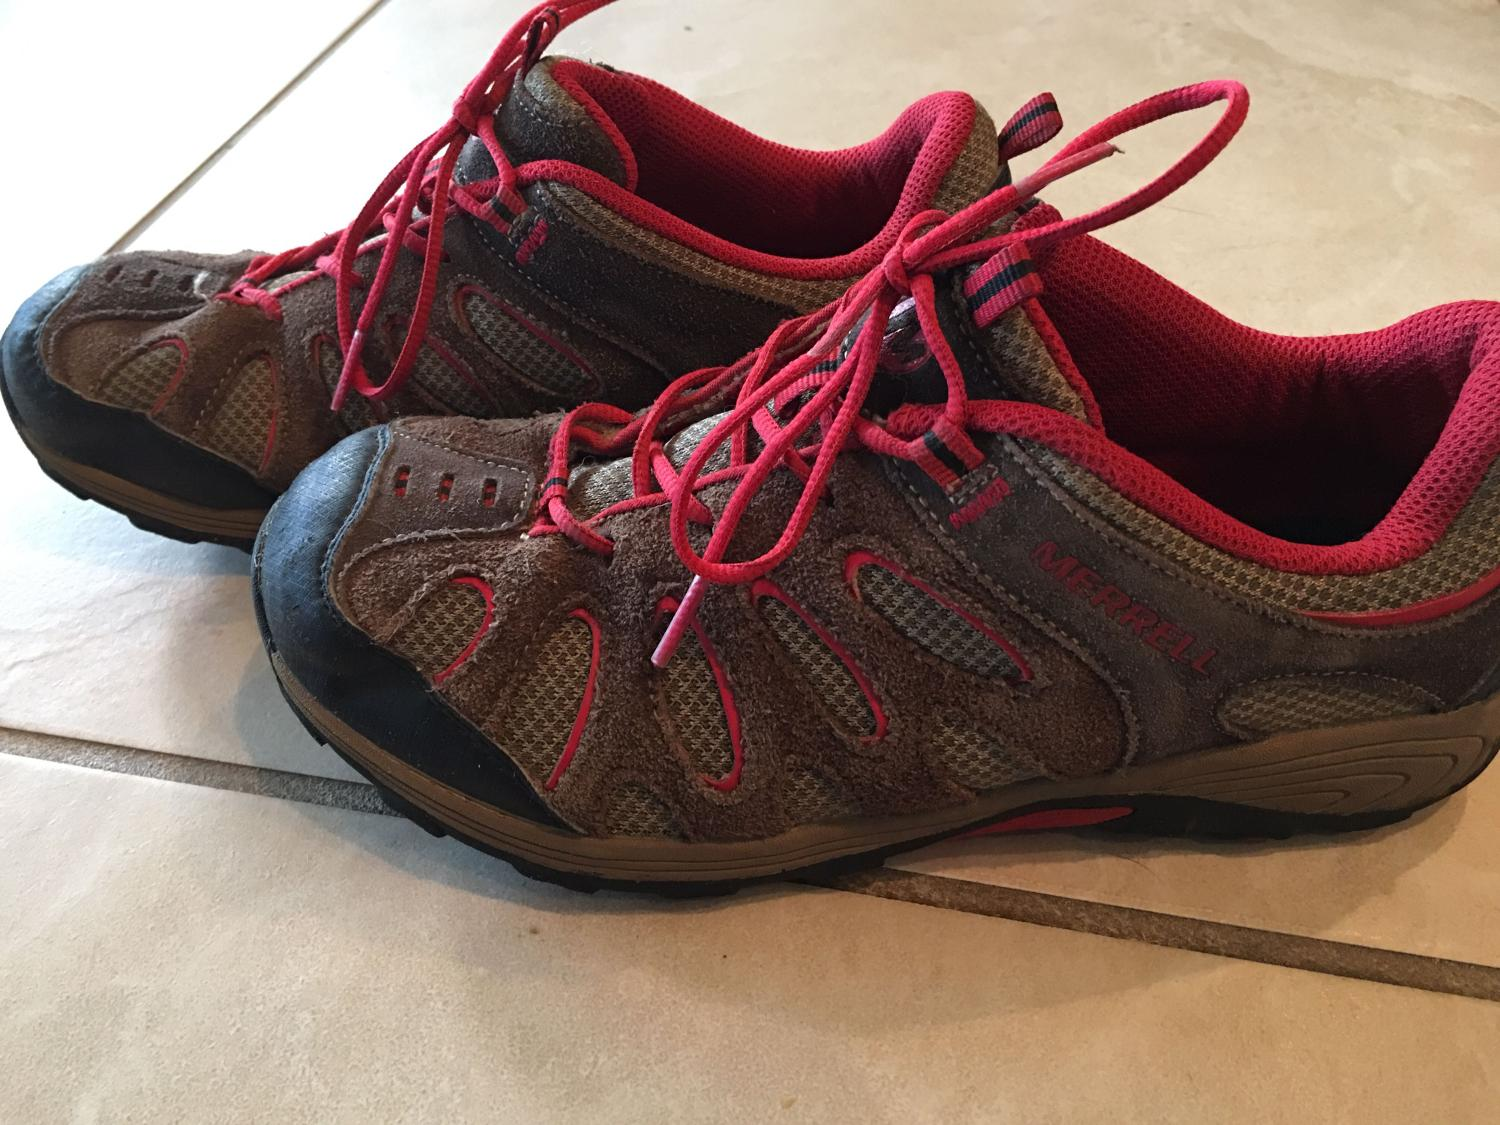 ... Merrell Hiking Shoes for sale in Huntersville, North Carolina for 2017